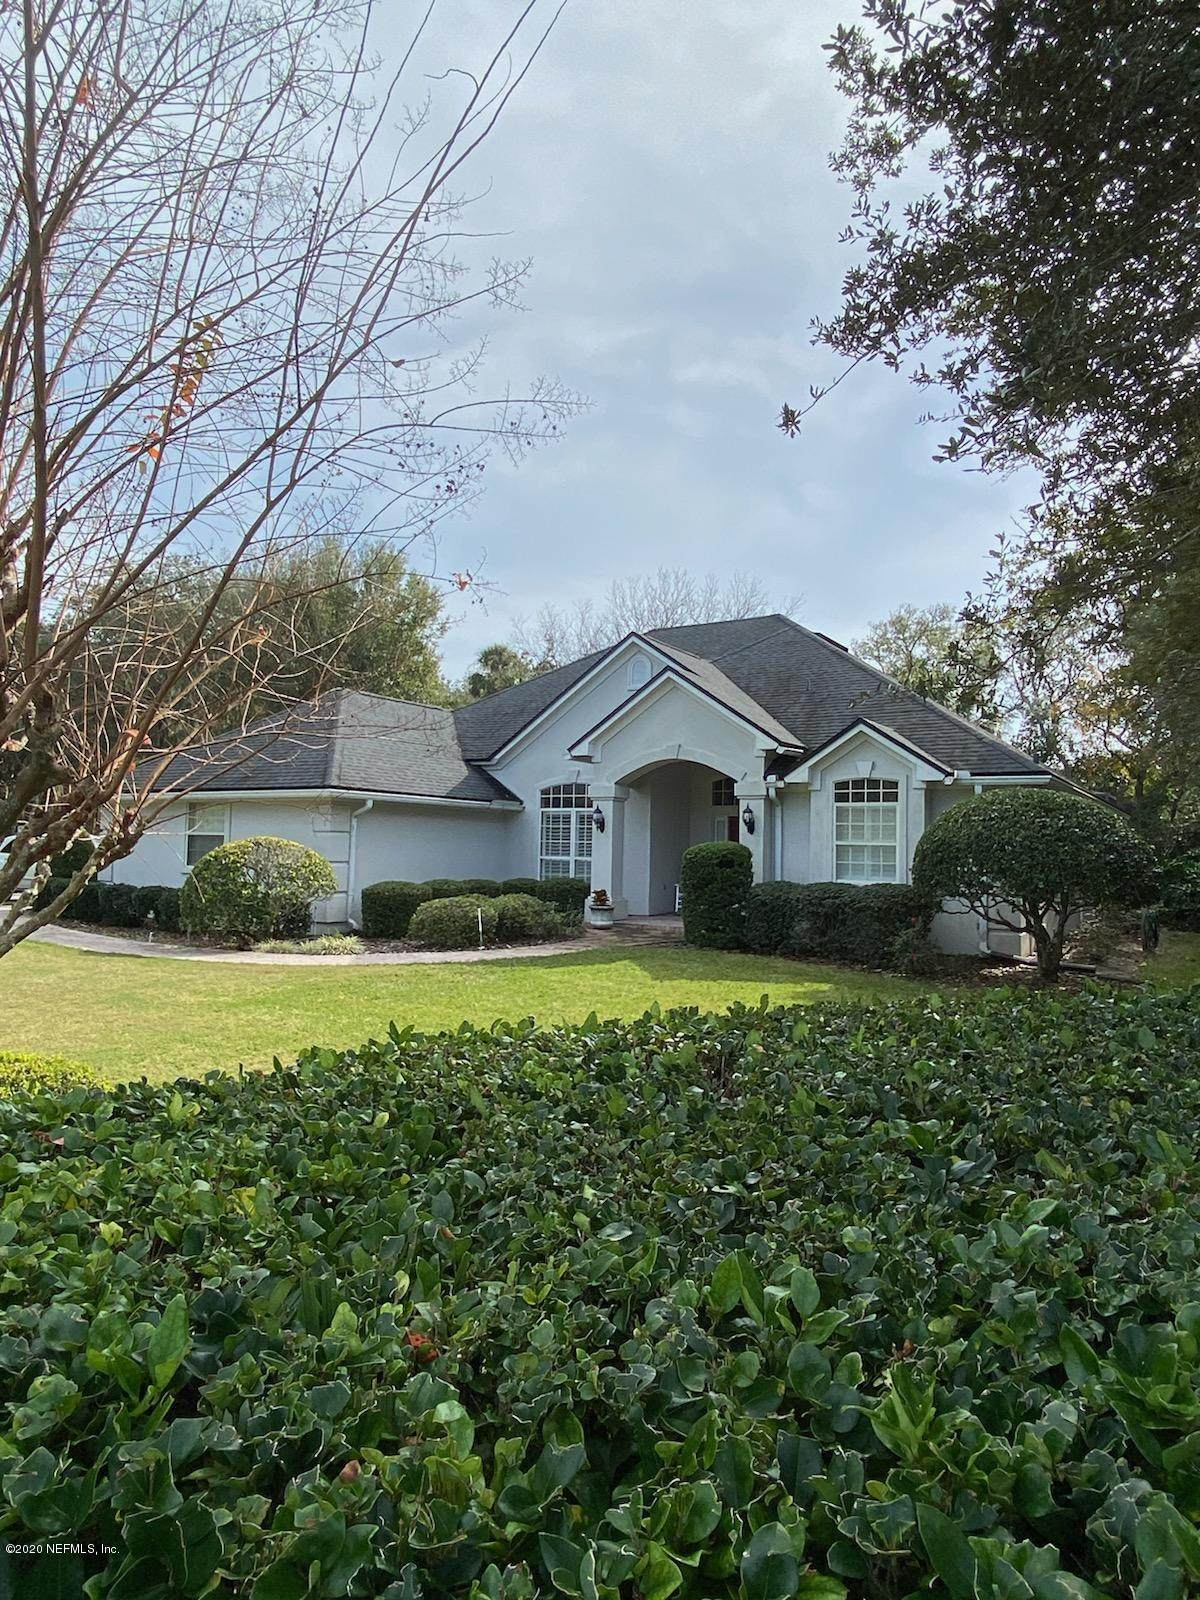 8985 Lake Kathryn Dr - Photo 1